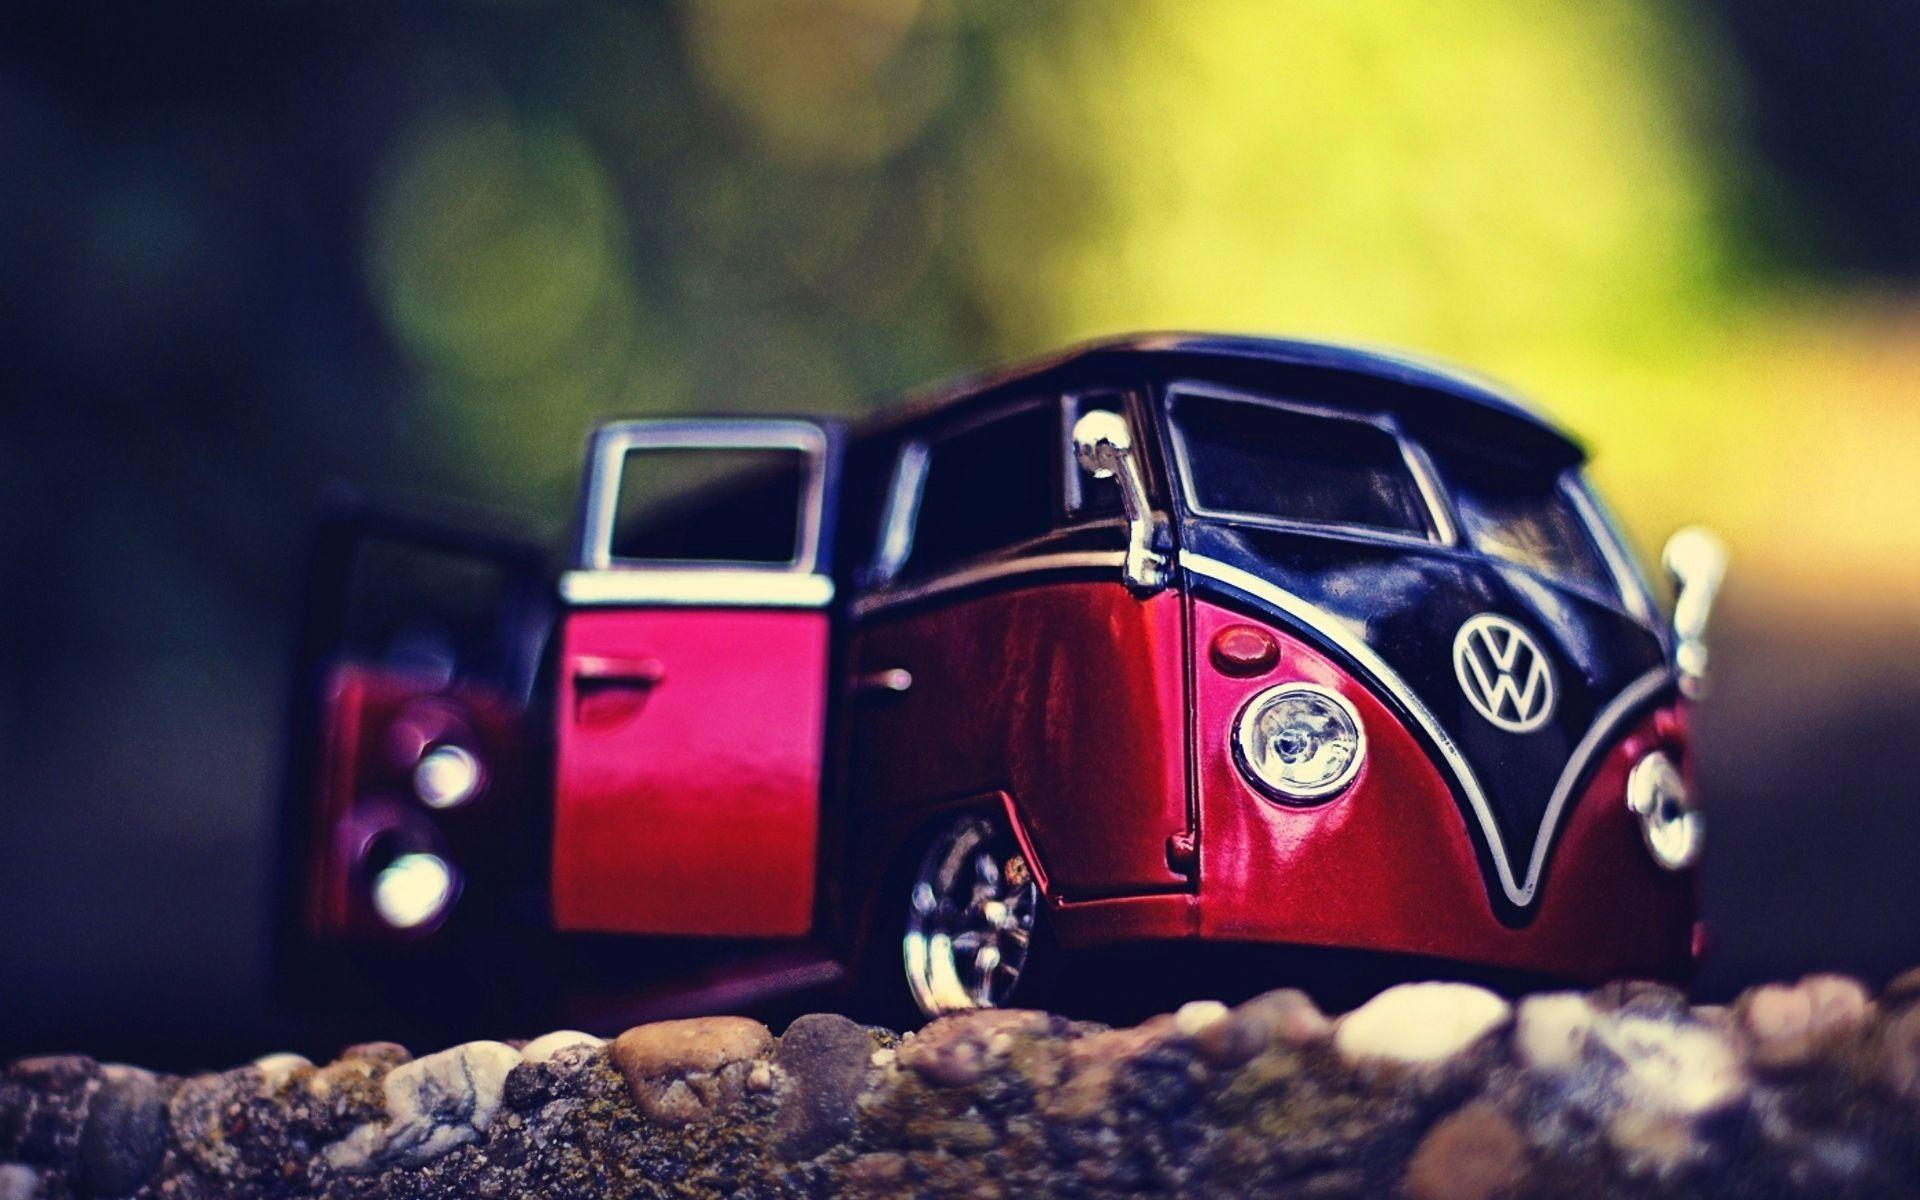 Vw Volkswagen Combi Van Bus Wallpapers Beach Art X